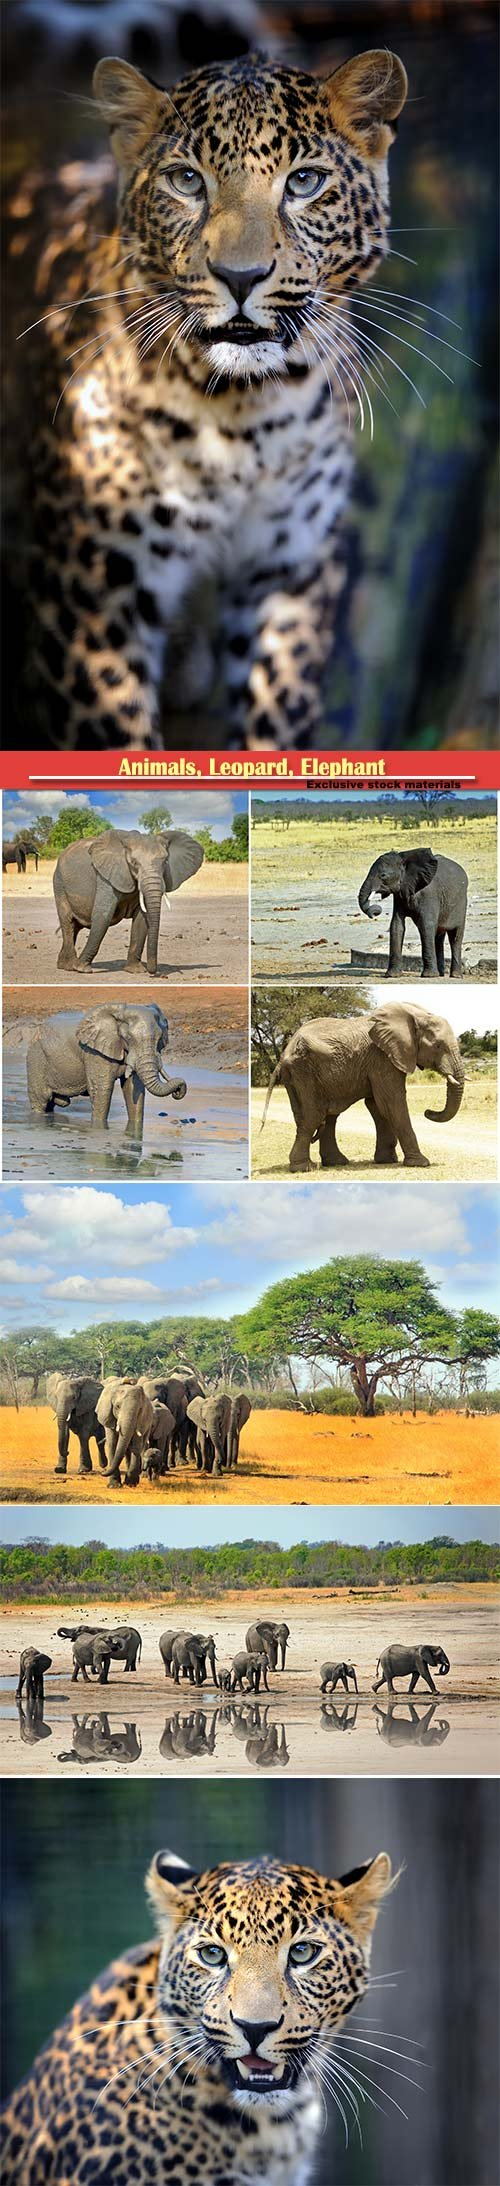 Animals, Leopard, Elephant